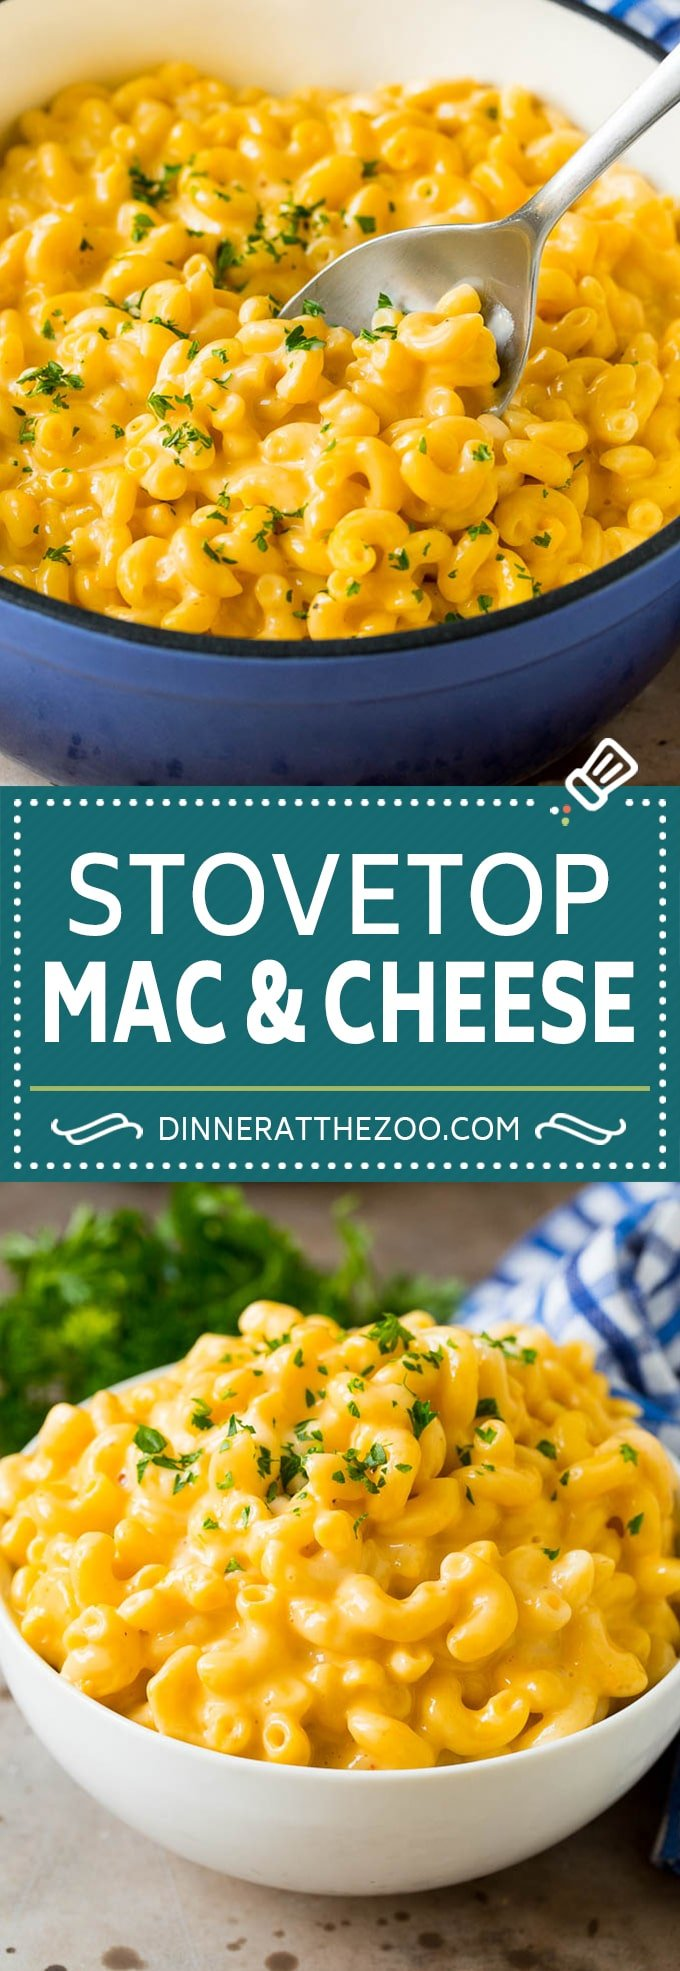 This stovetop mac and cheese is a one pot dish of tender macaroni simmered in an ultra creamy sauce with two types of cheese.